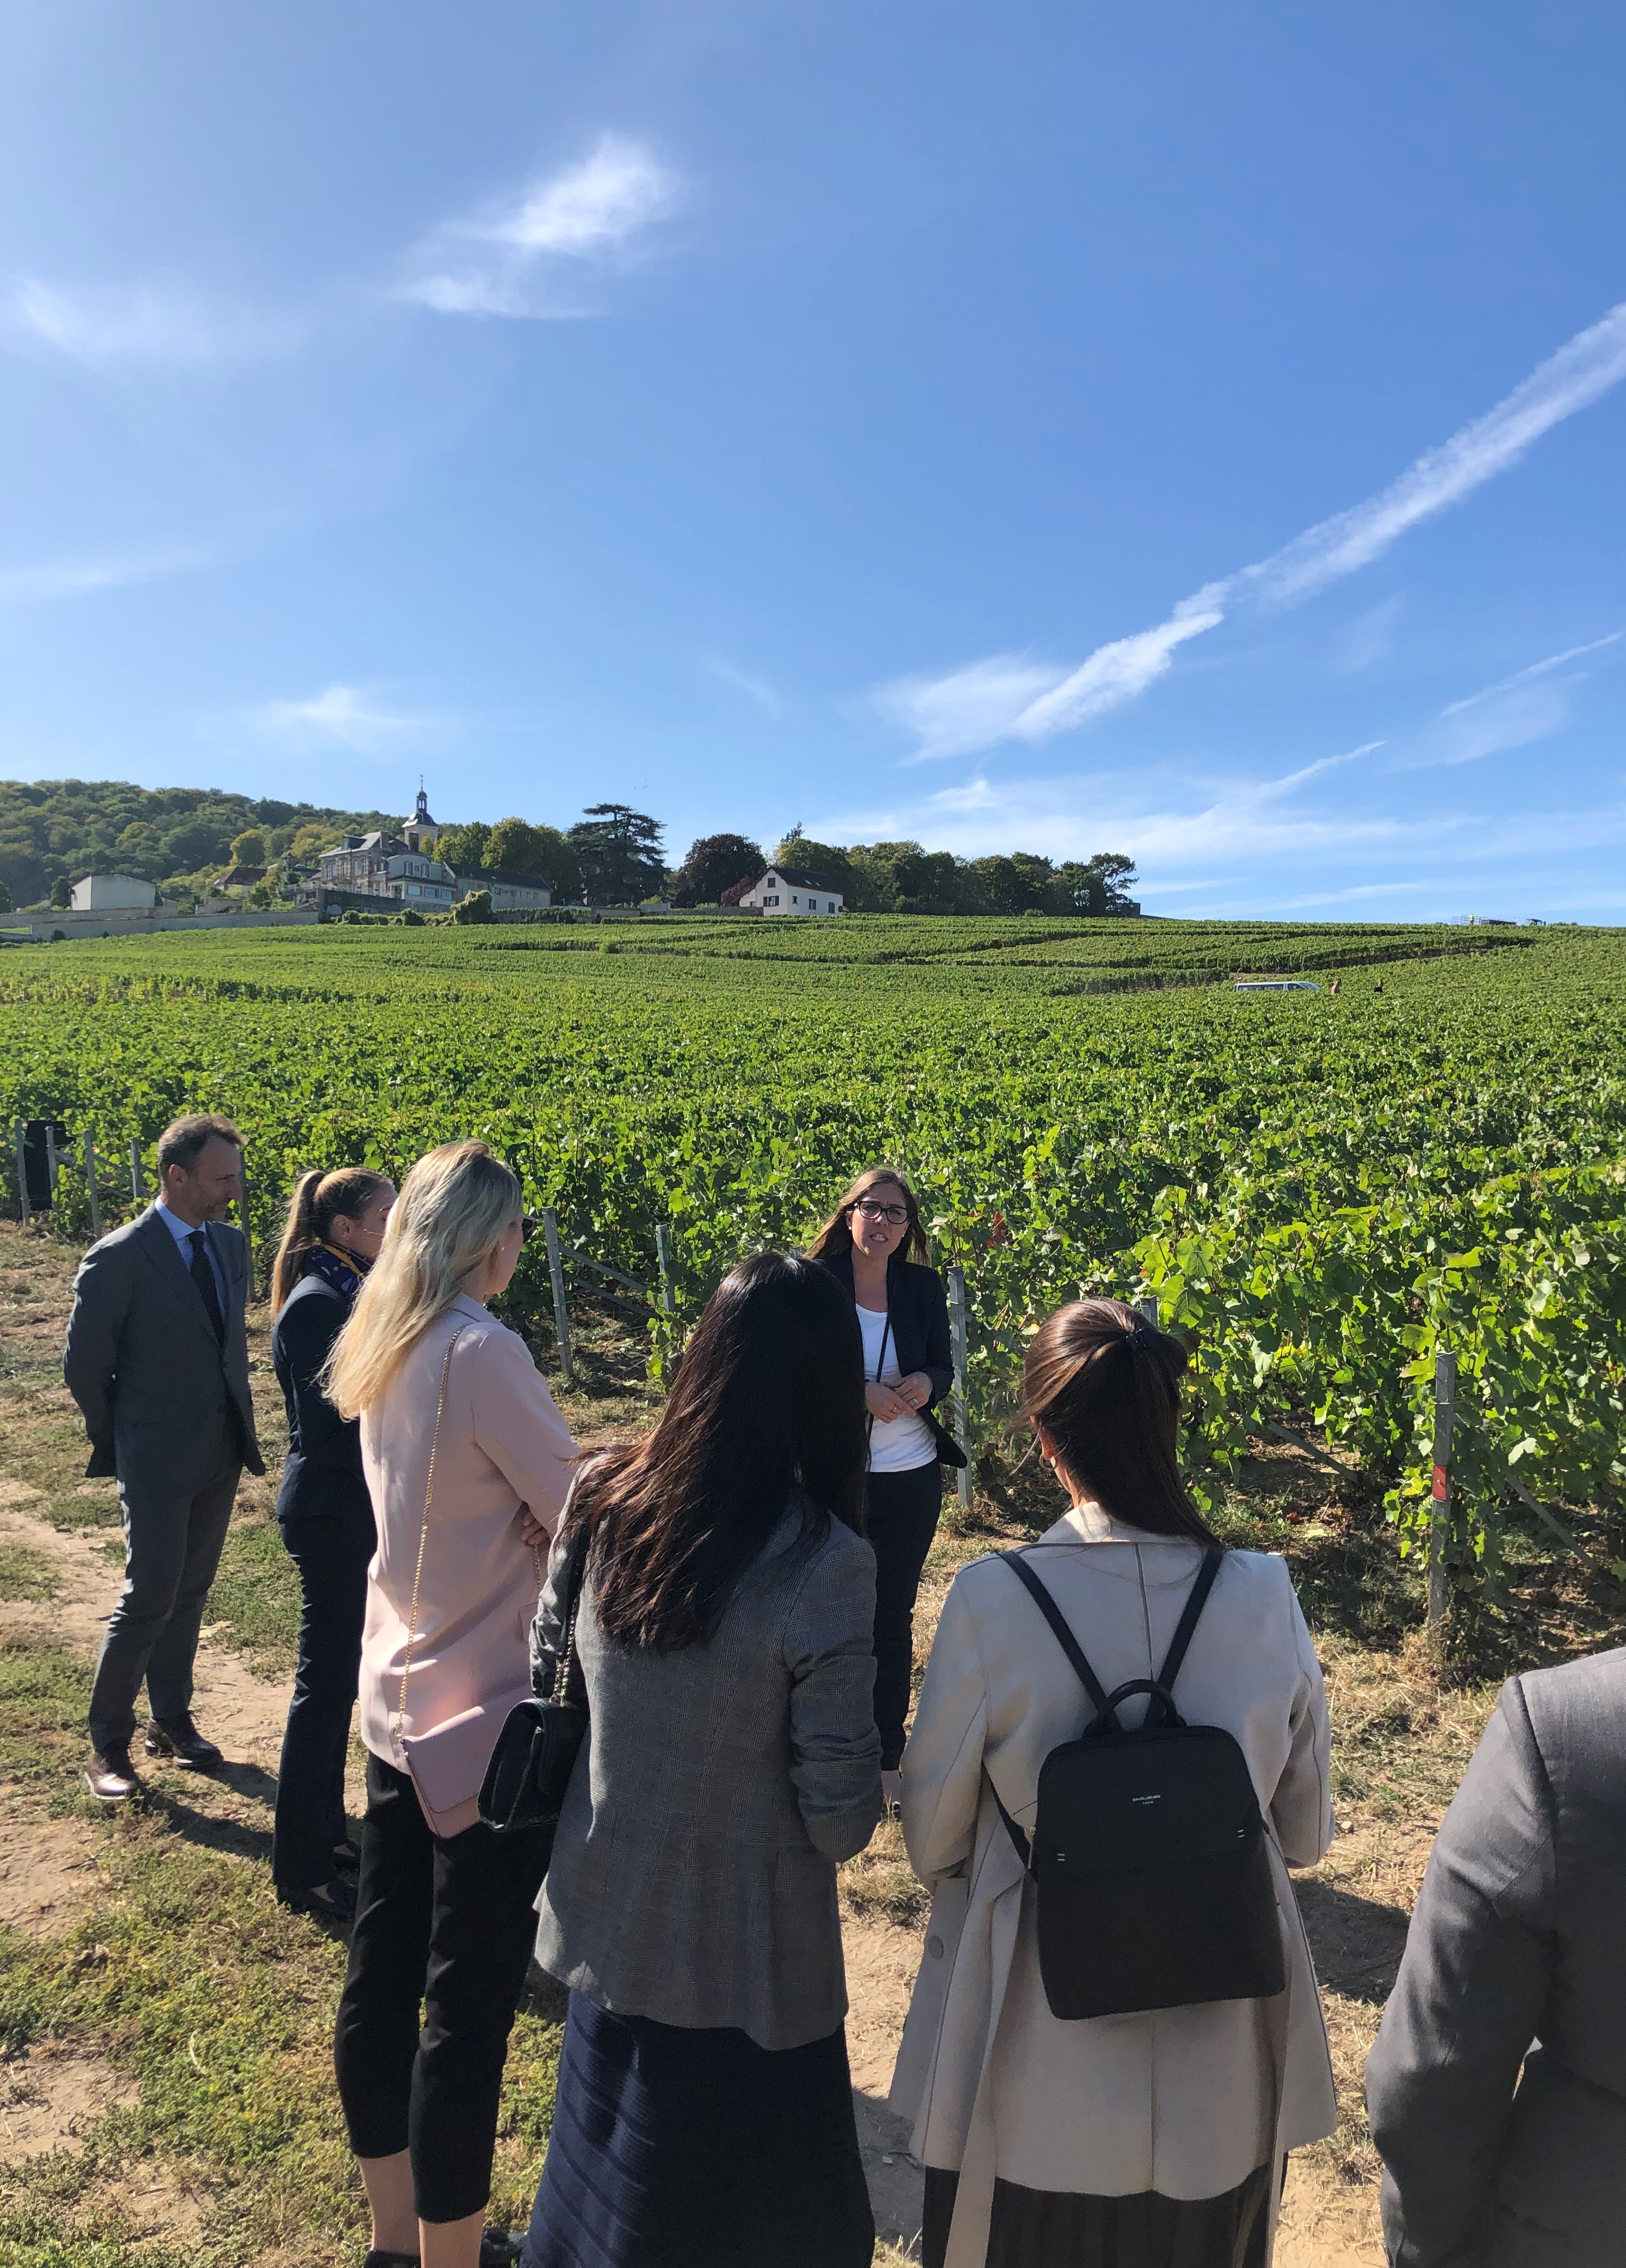 Students visiting the Veuve Clicquot vineyards